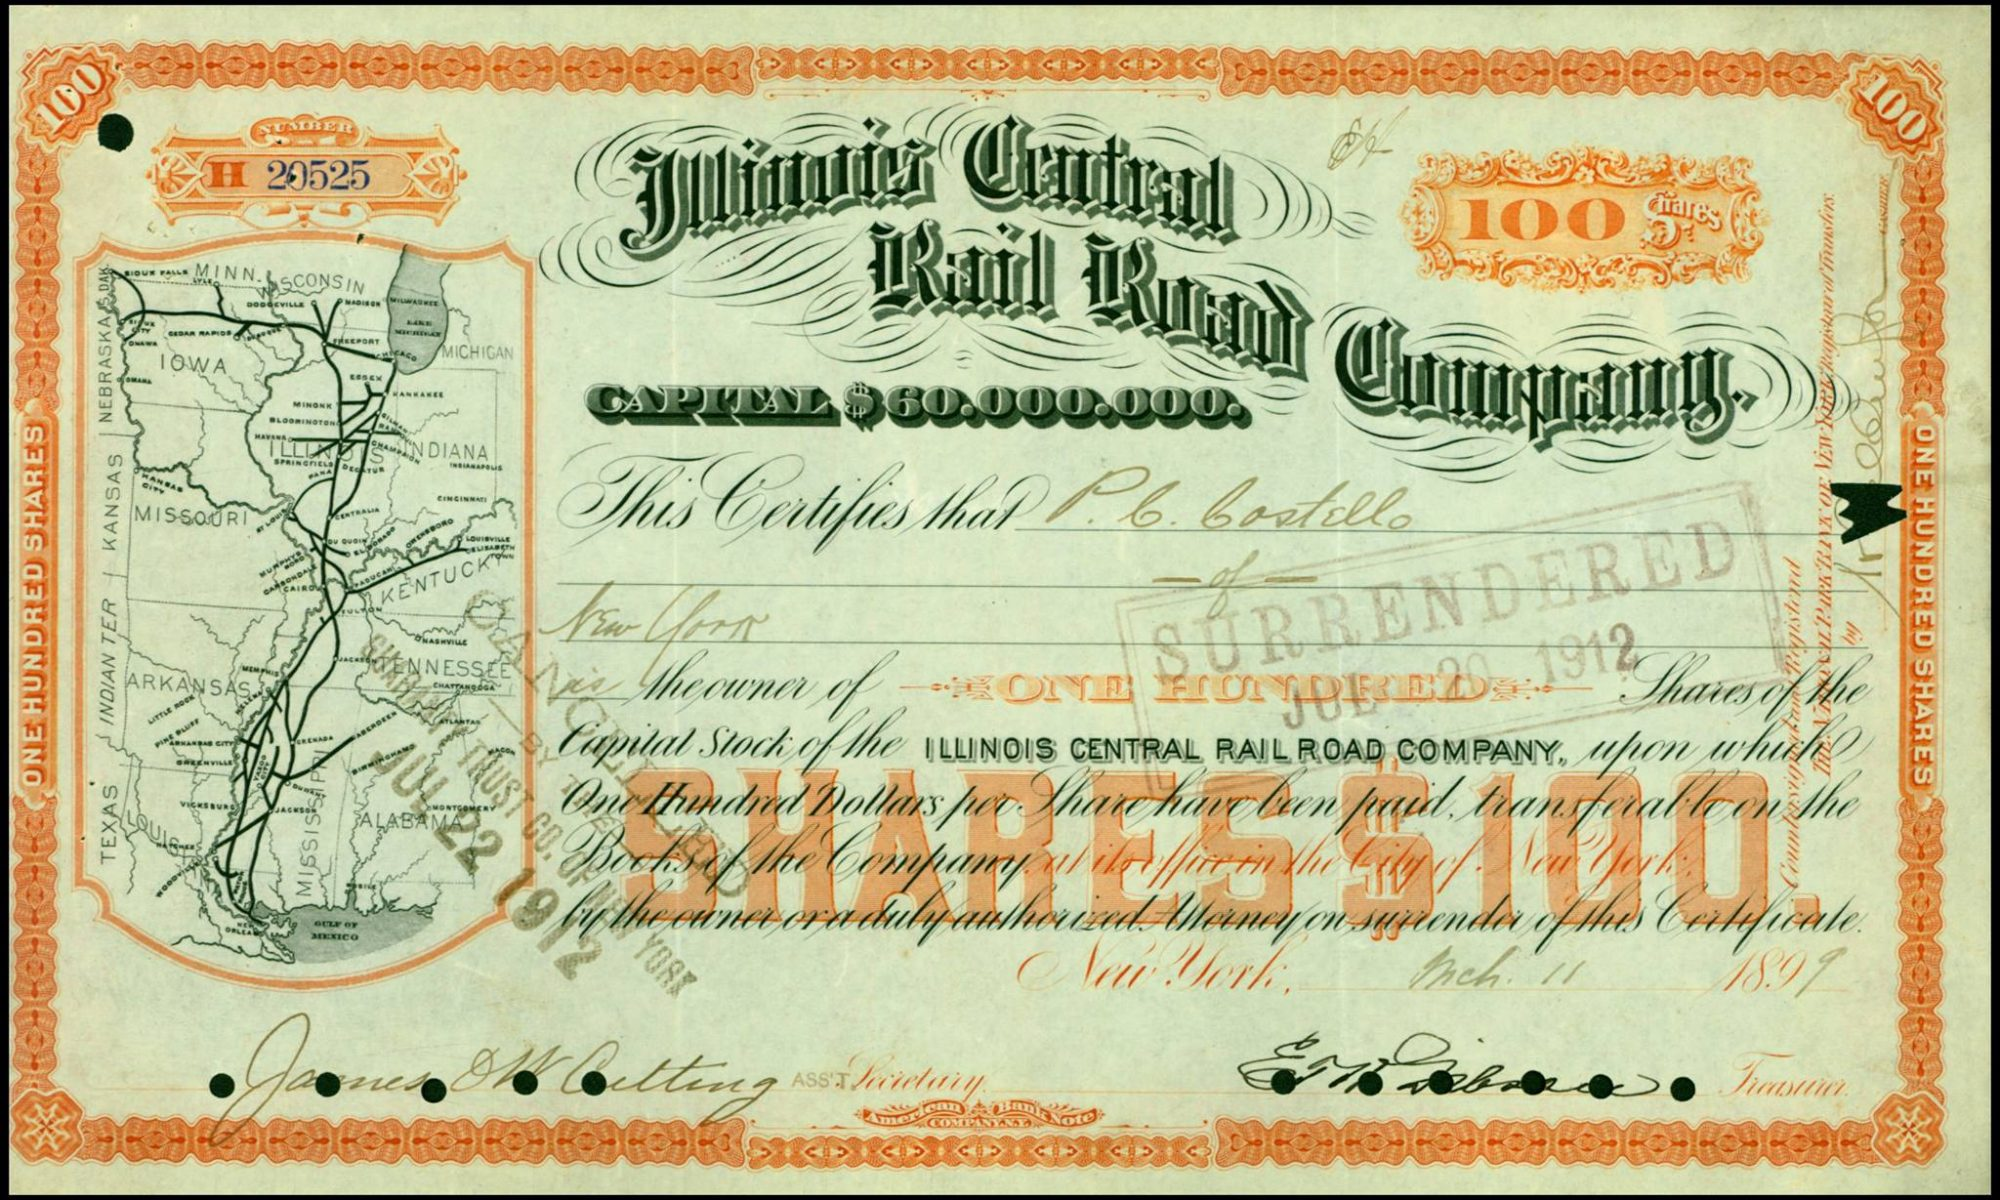 A share certificate for the Illinois Central Railroad, dated 1899